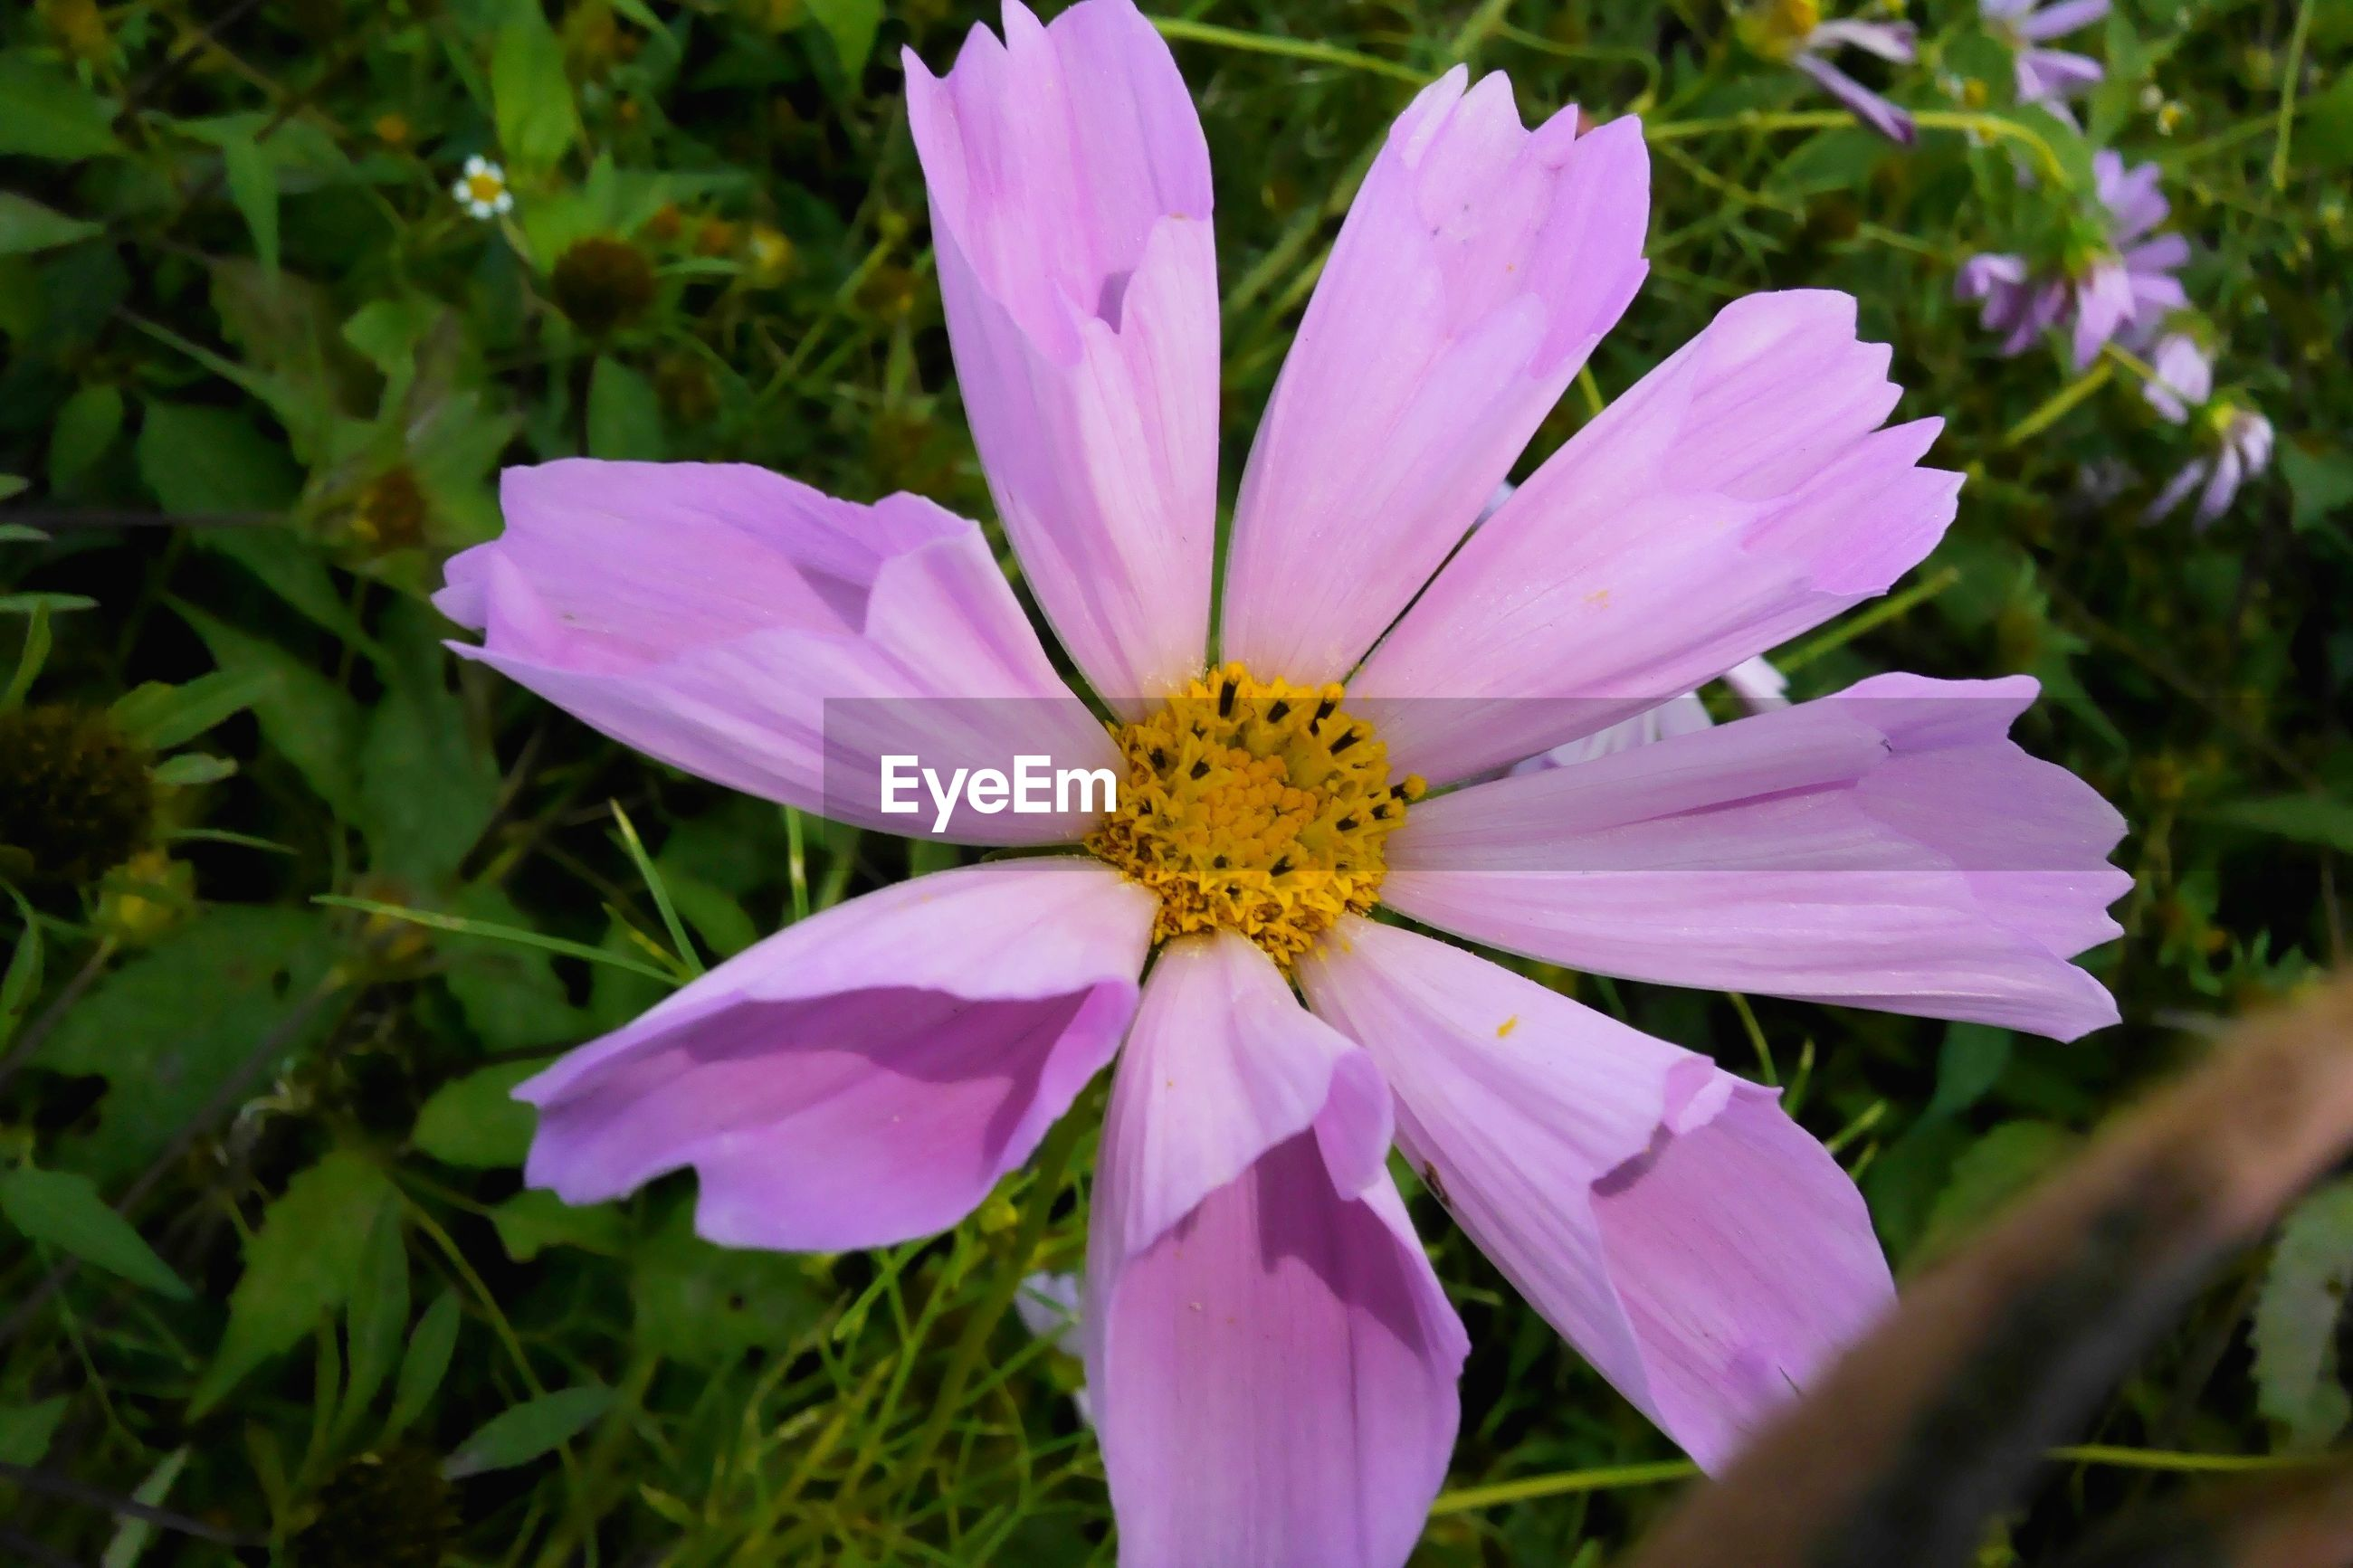 CLOSE-UP OF FRESH PINK FLOWER BLOOMING IN GARDEN